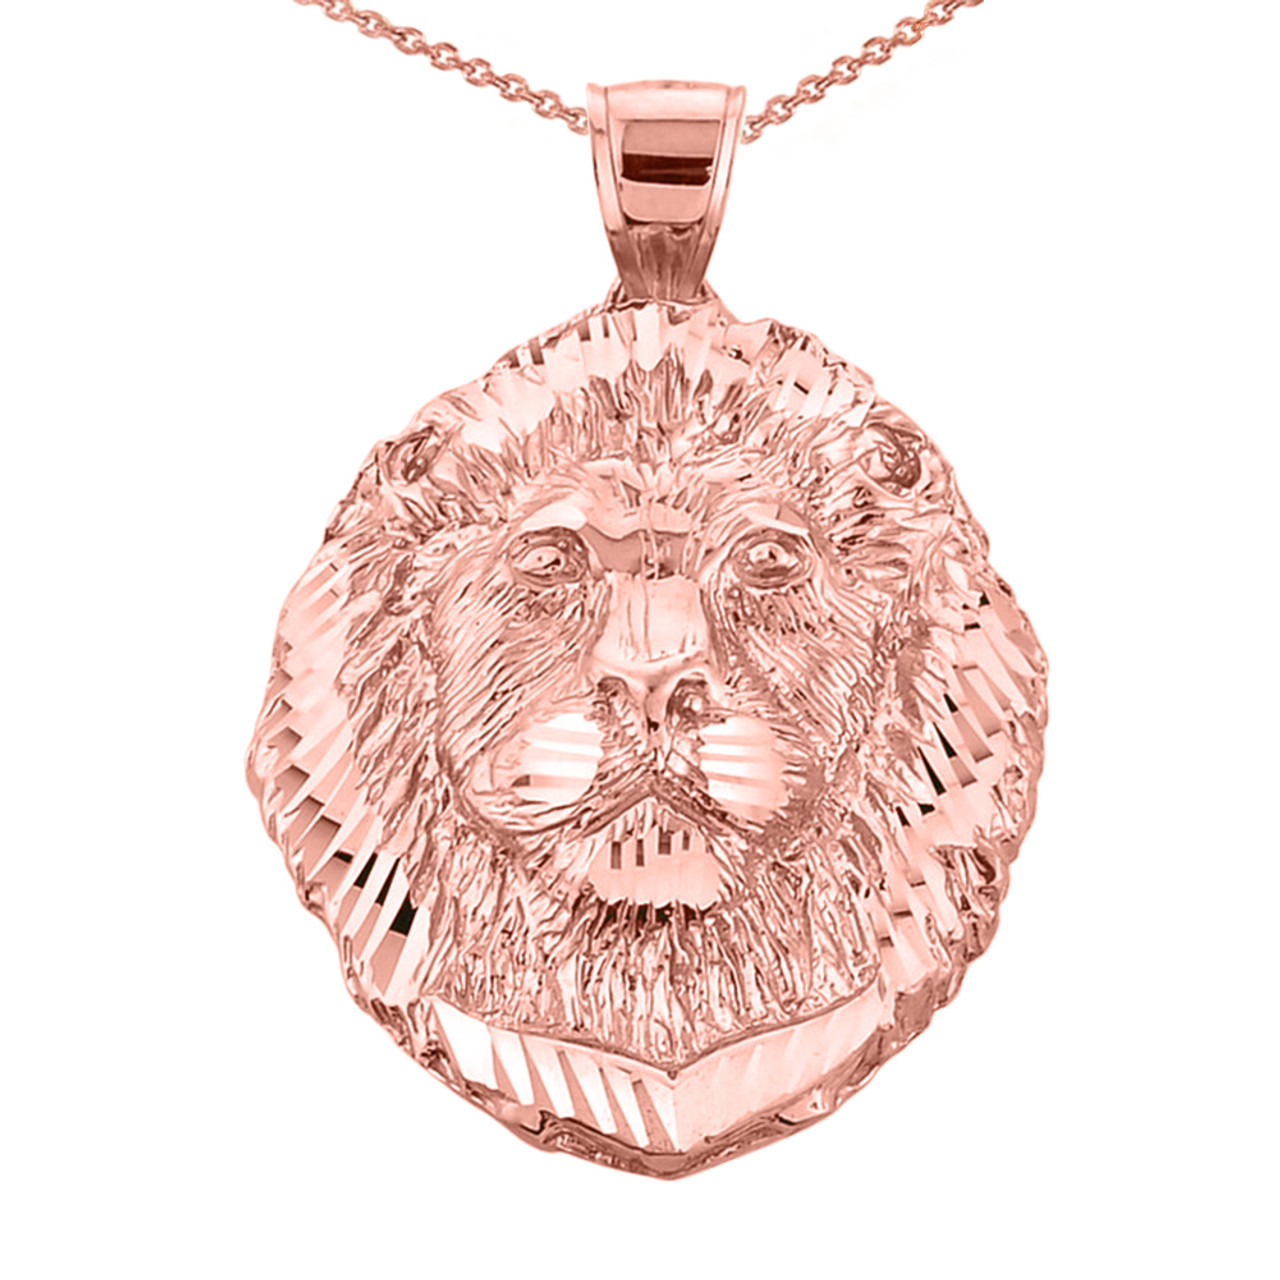 Rose gold lion head charm pendant necklace diamond cut lion head pendant necklace in rose gold mozeypictures Image collections